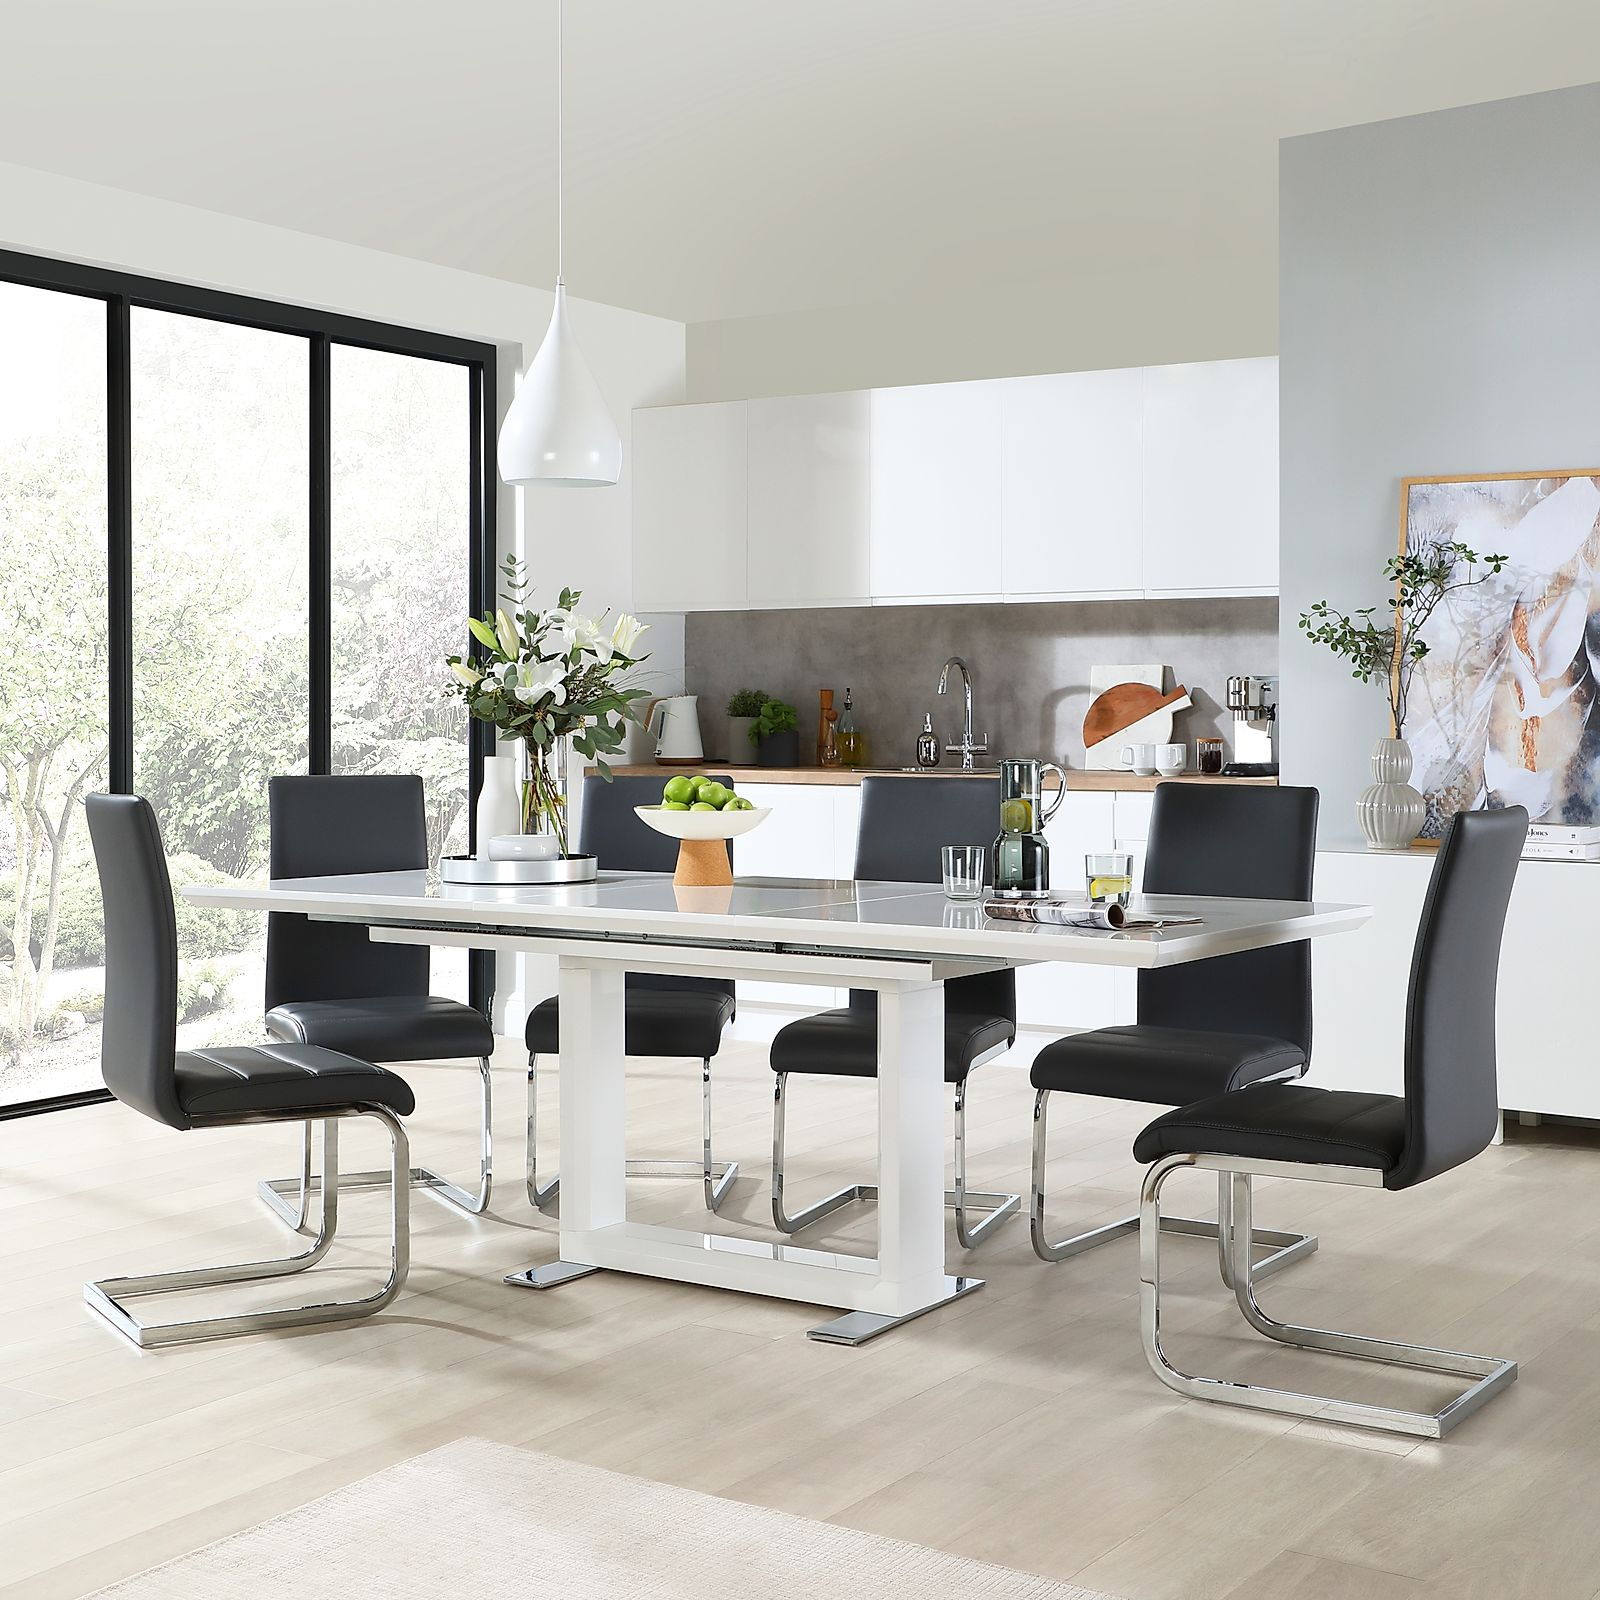 Tokyo White High Gloss Extending Dining Table With 6 Perth